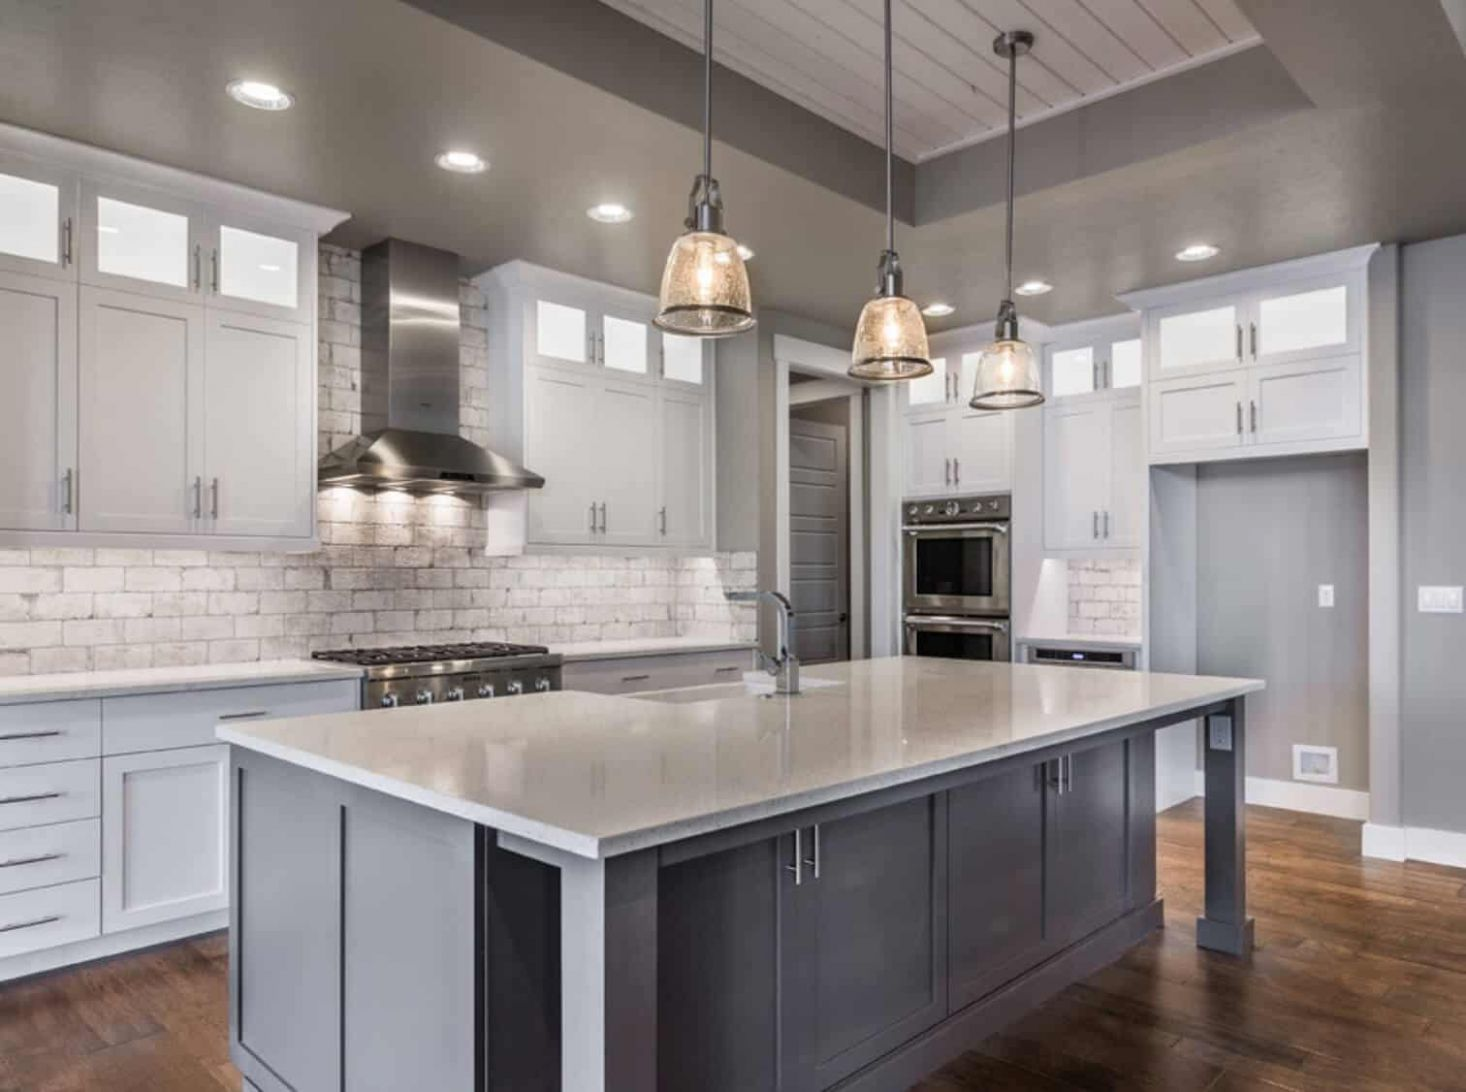 Modern Kitchen Ideas Every Cook Is Sure To Fall In Love With - kitchen ideas photos